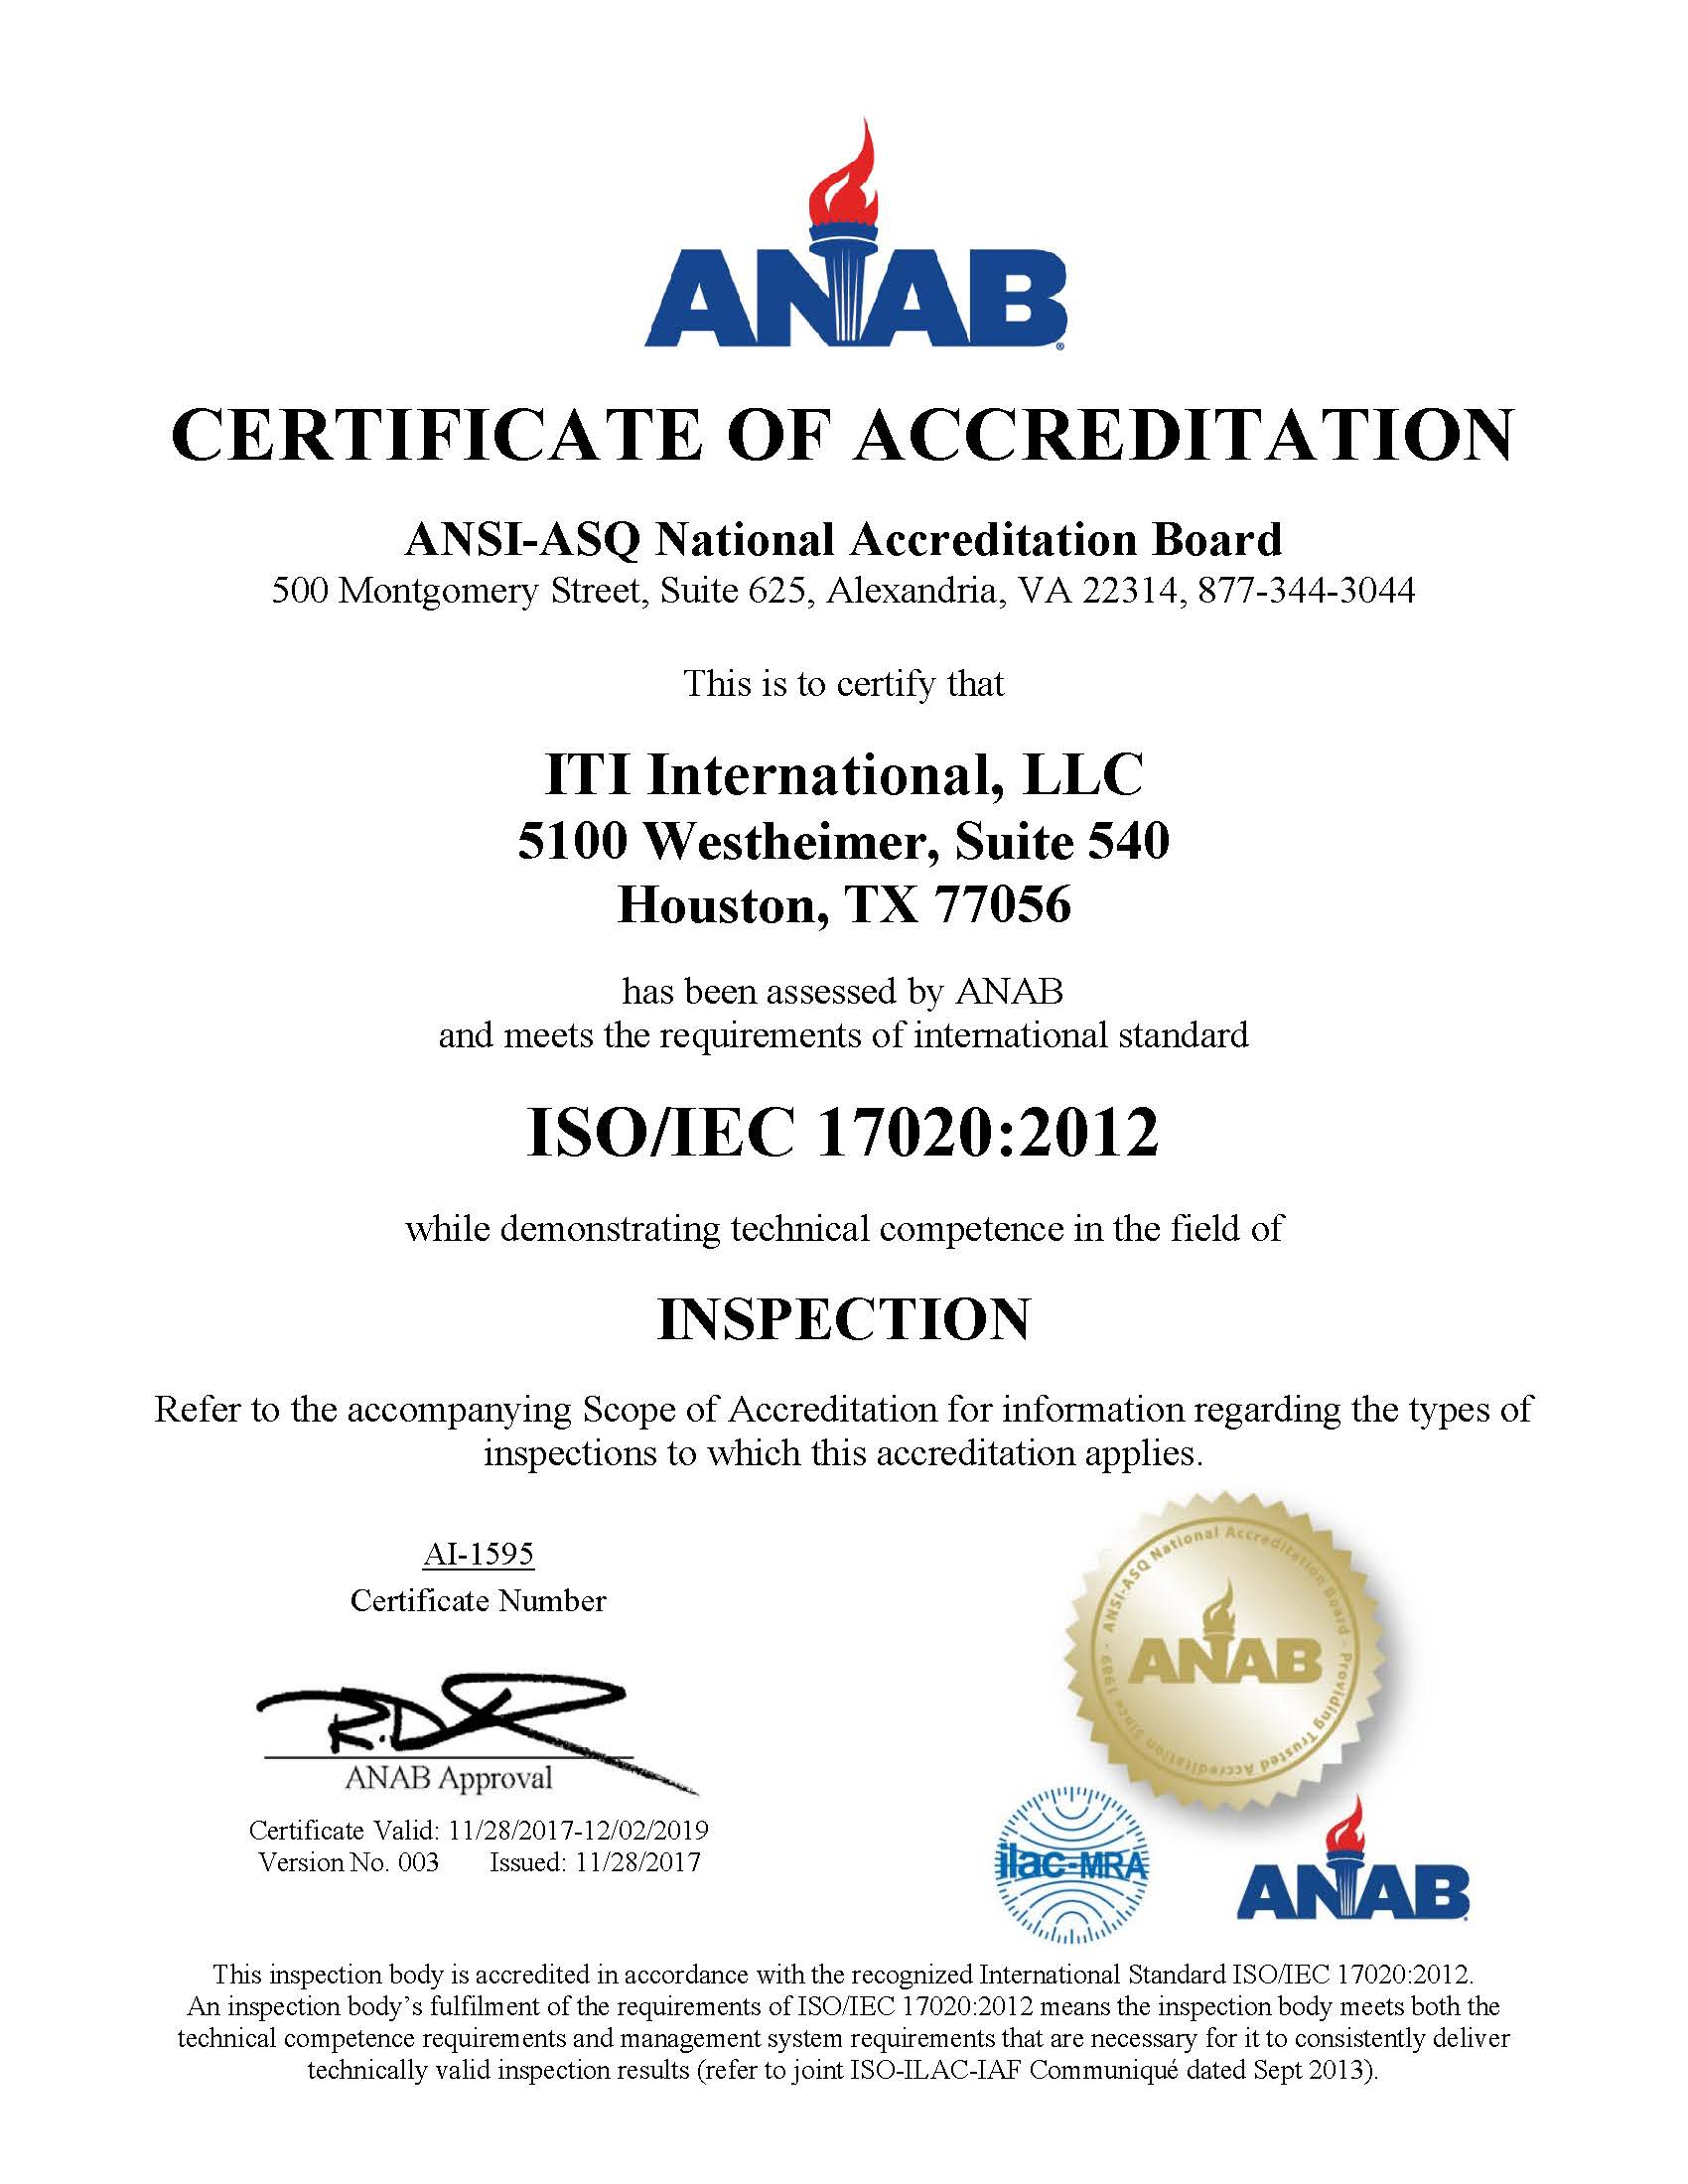 ISO/IEC 17020:2012 Accreditation – ITI International